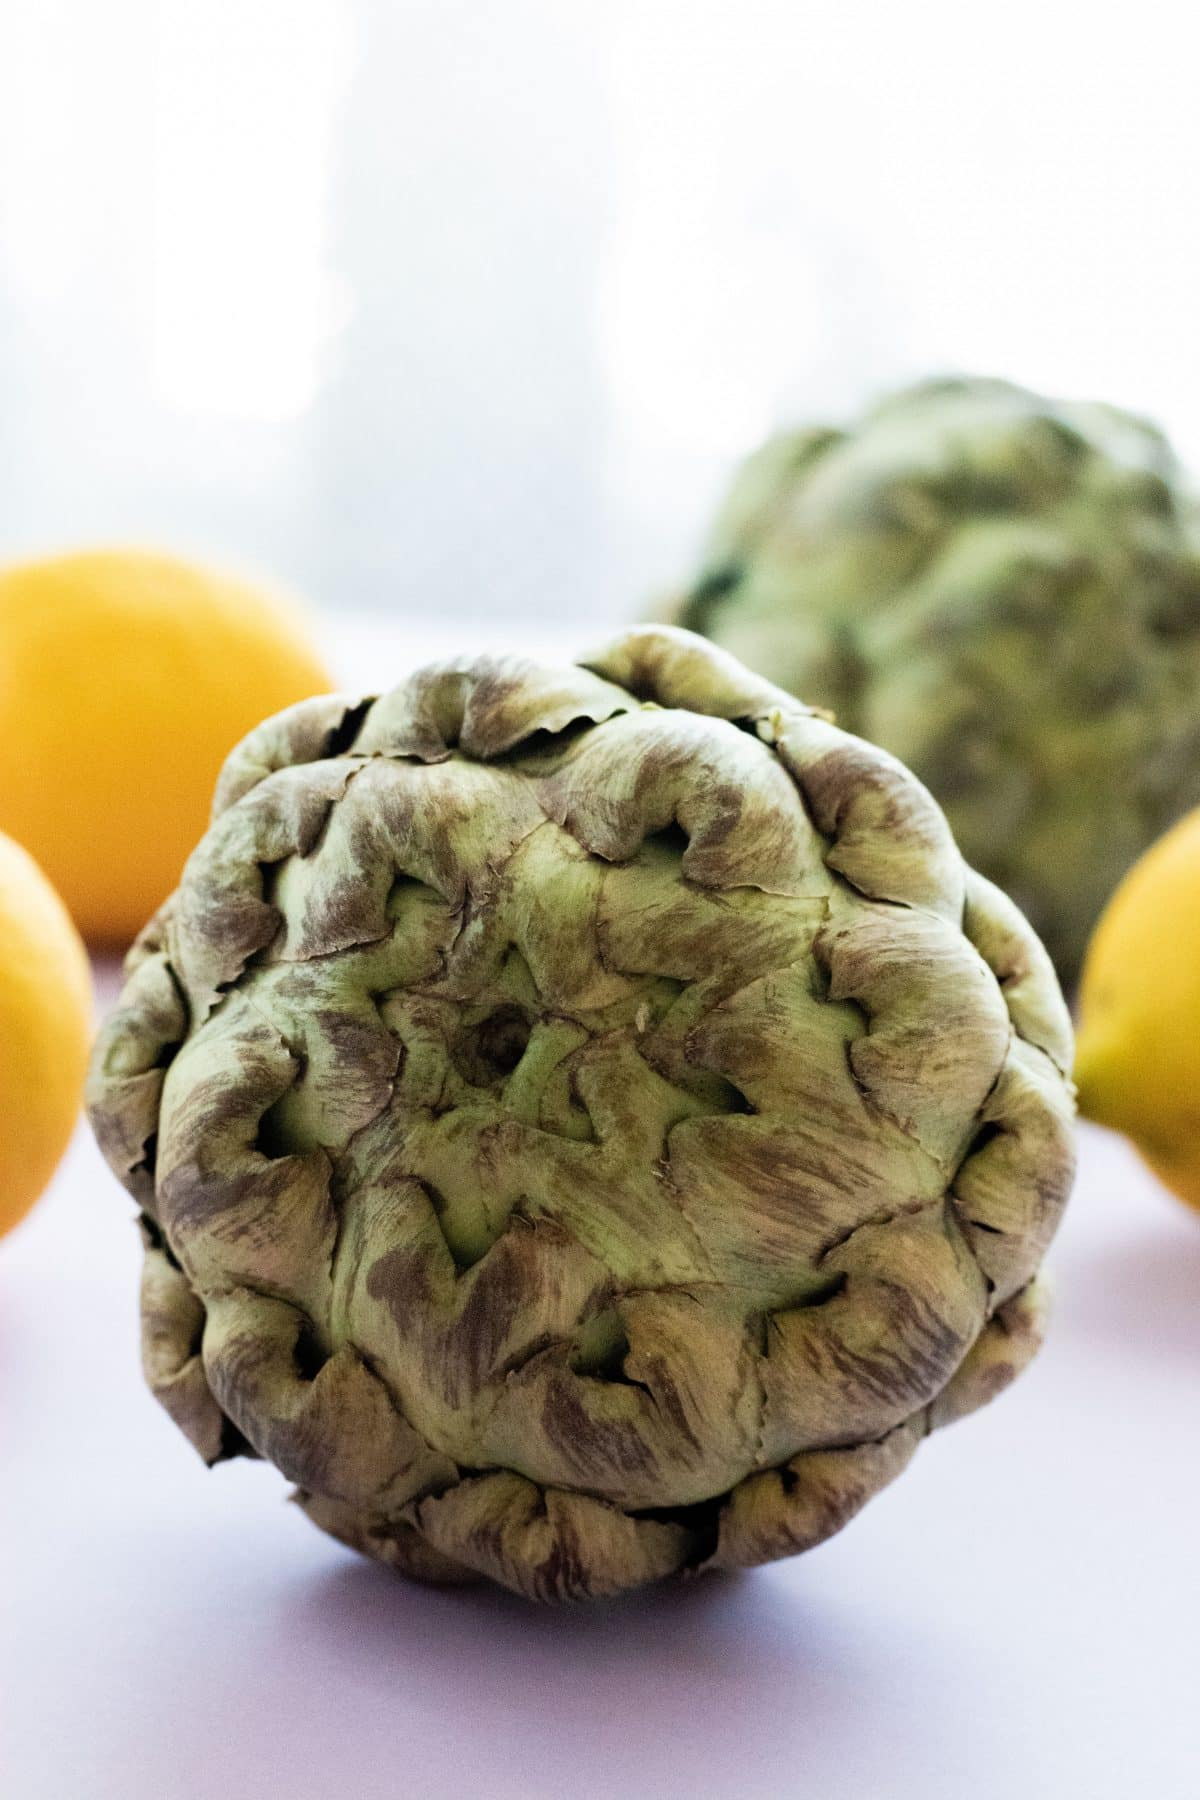 an artichoke with another artichoke and lemons in the background, on a lavender surface